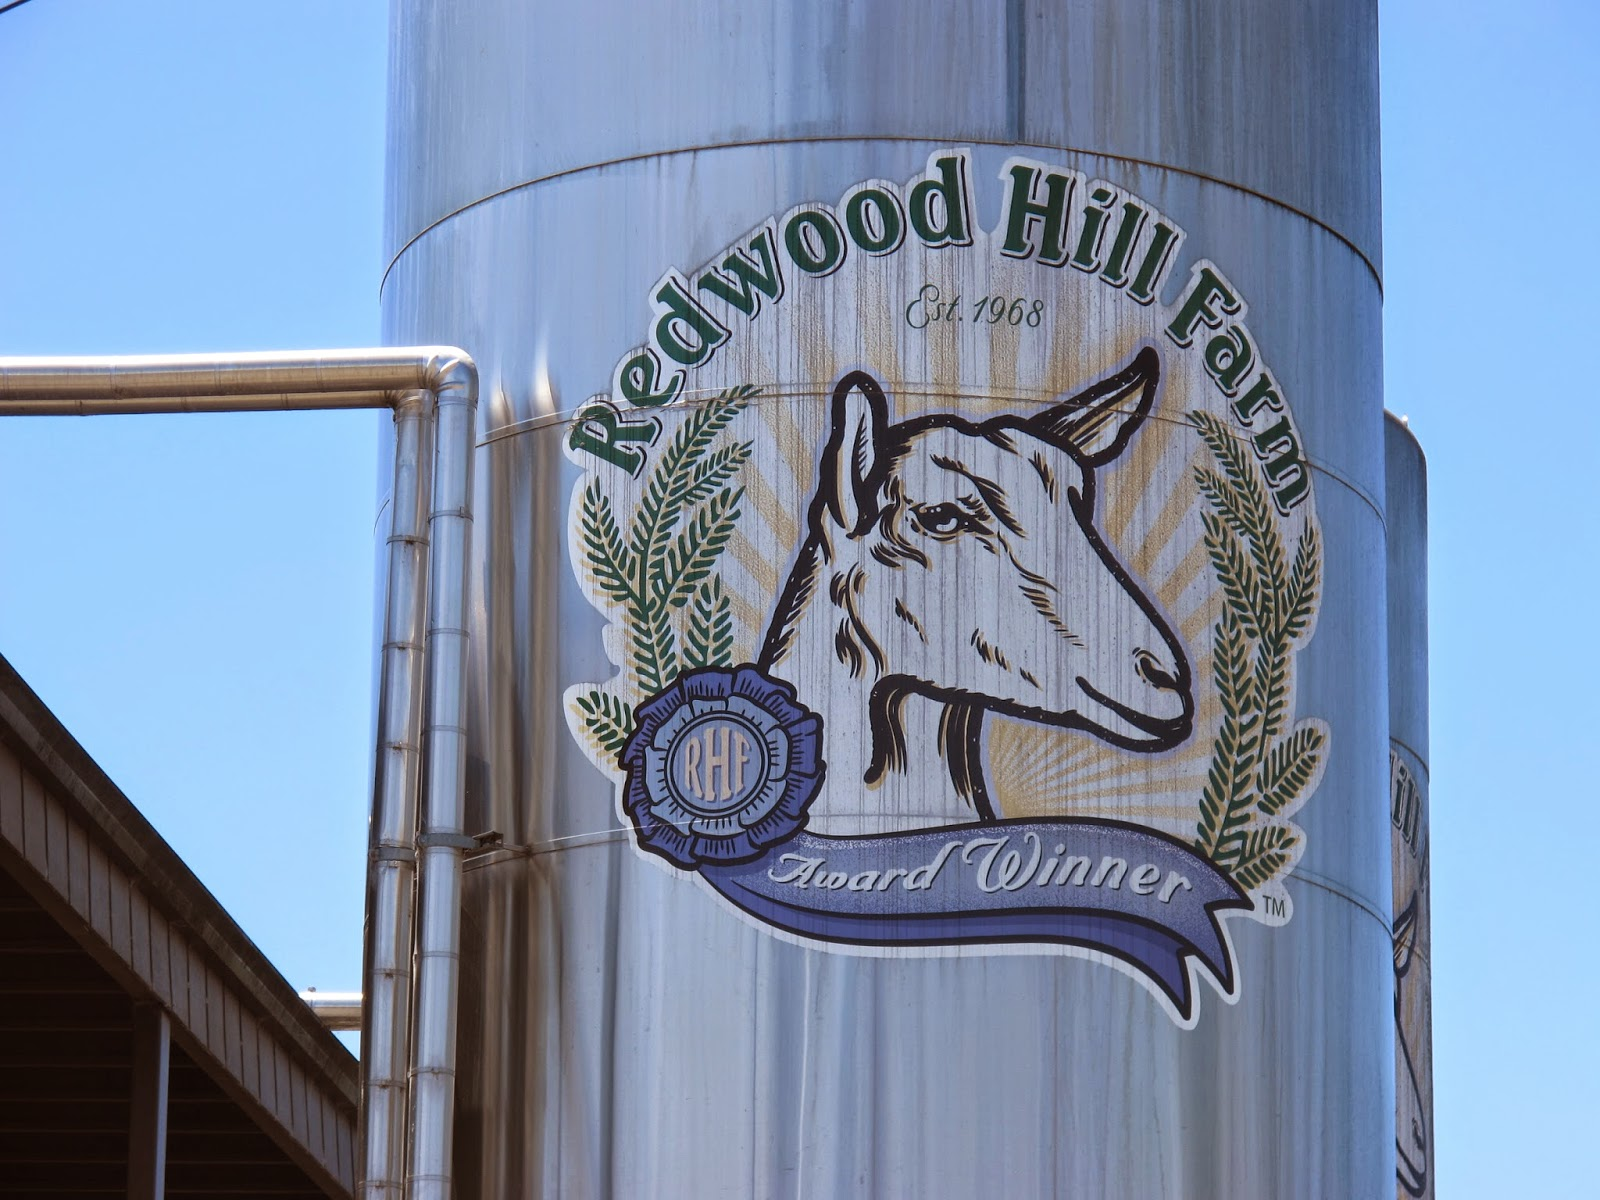 Redwood Hill Farm: Part 2 – The Creamery